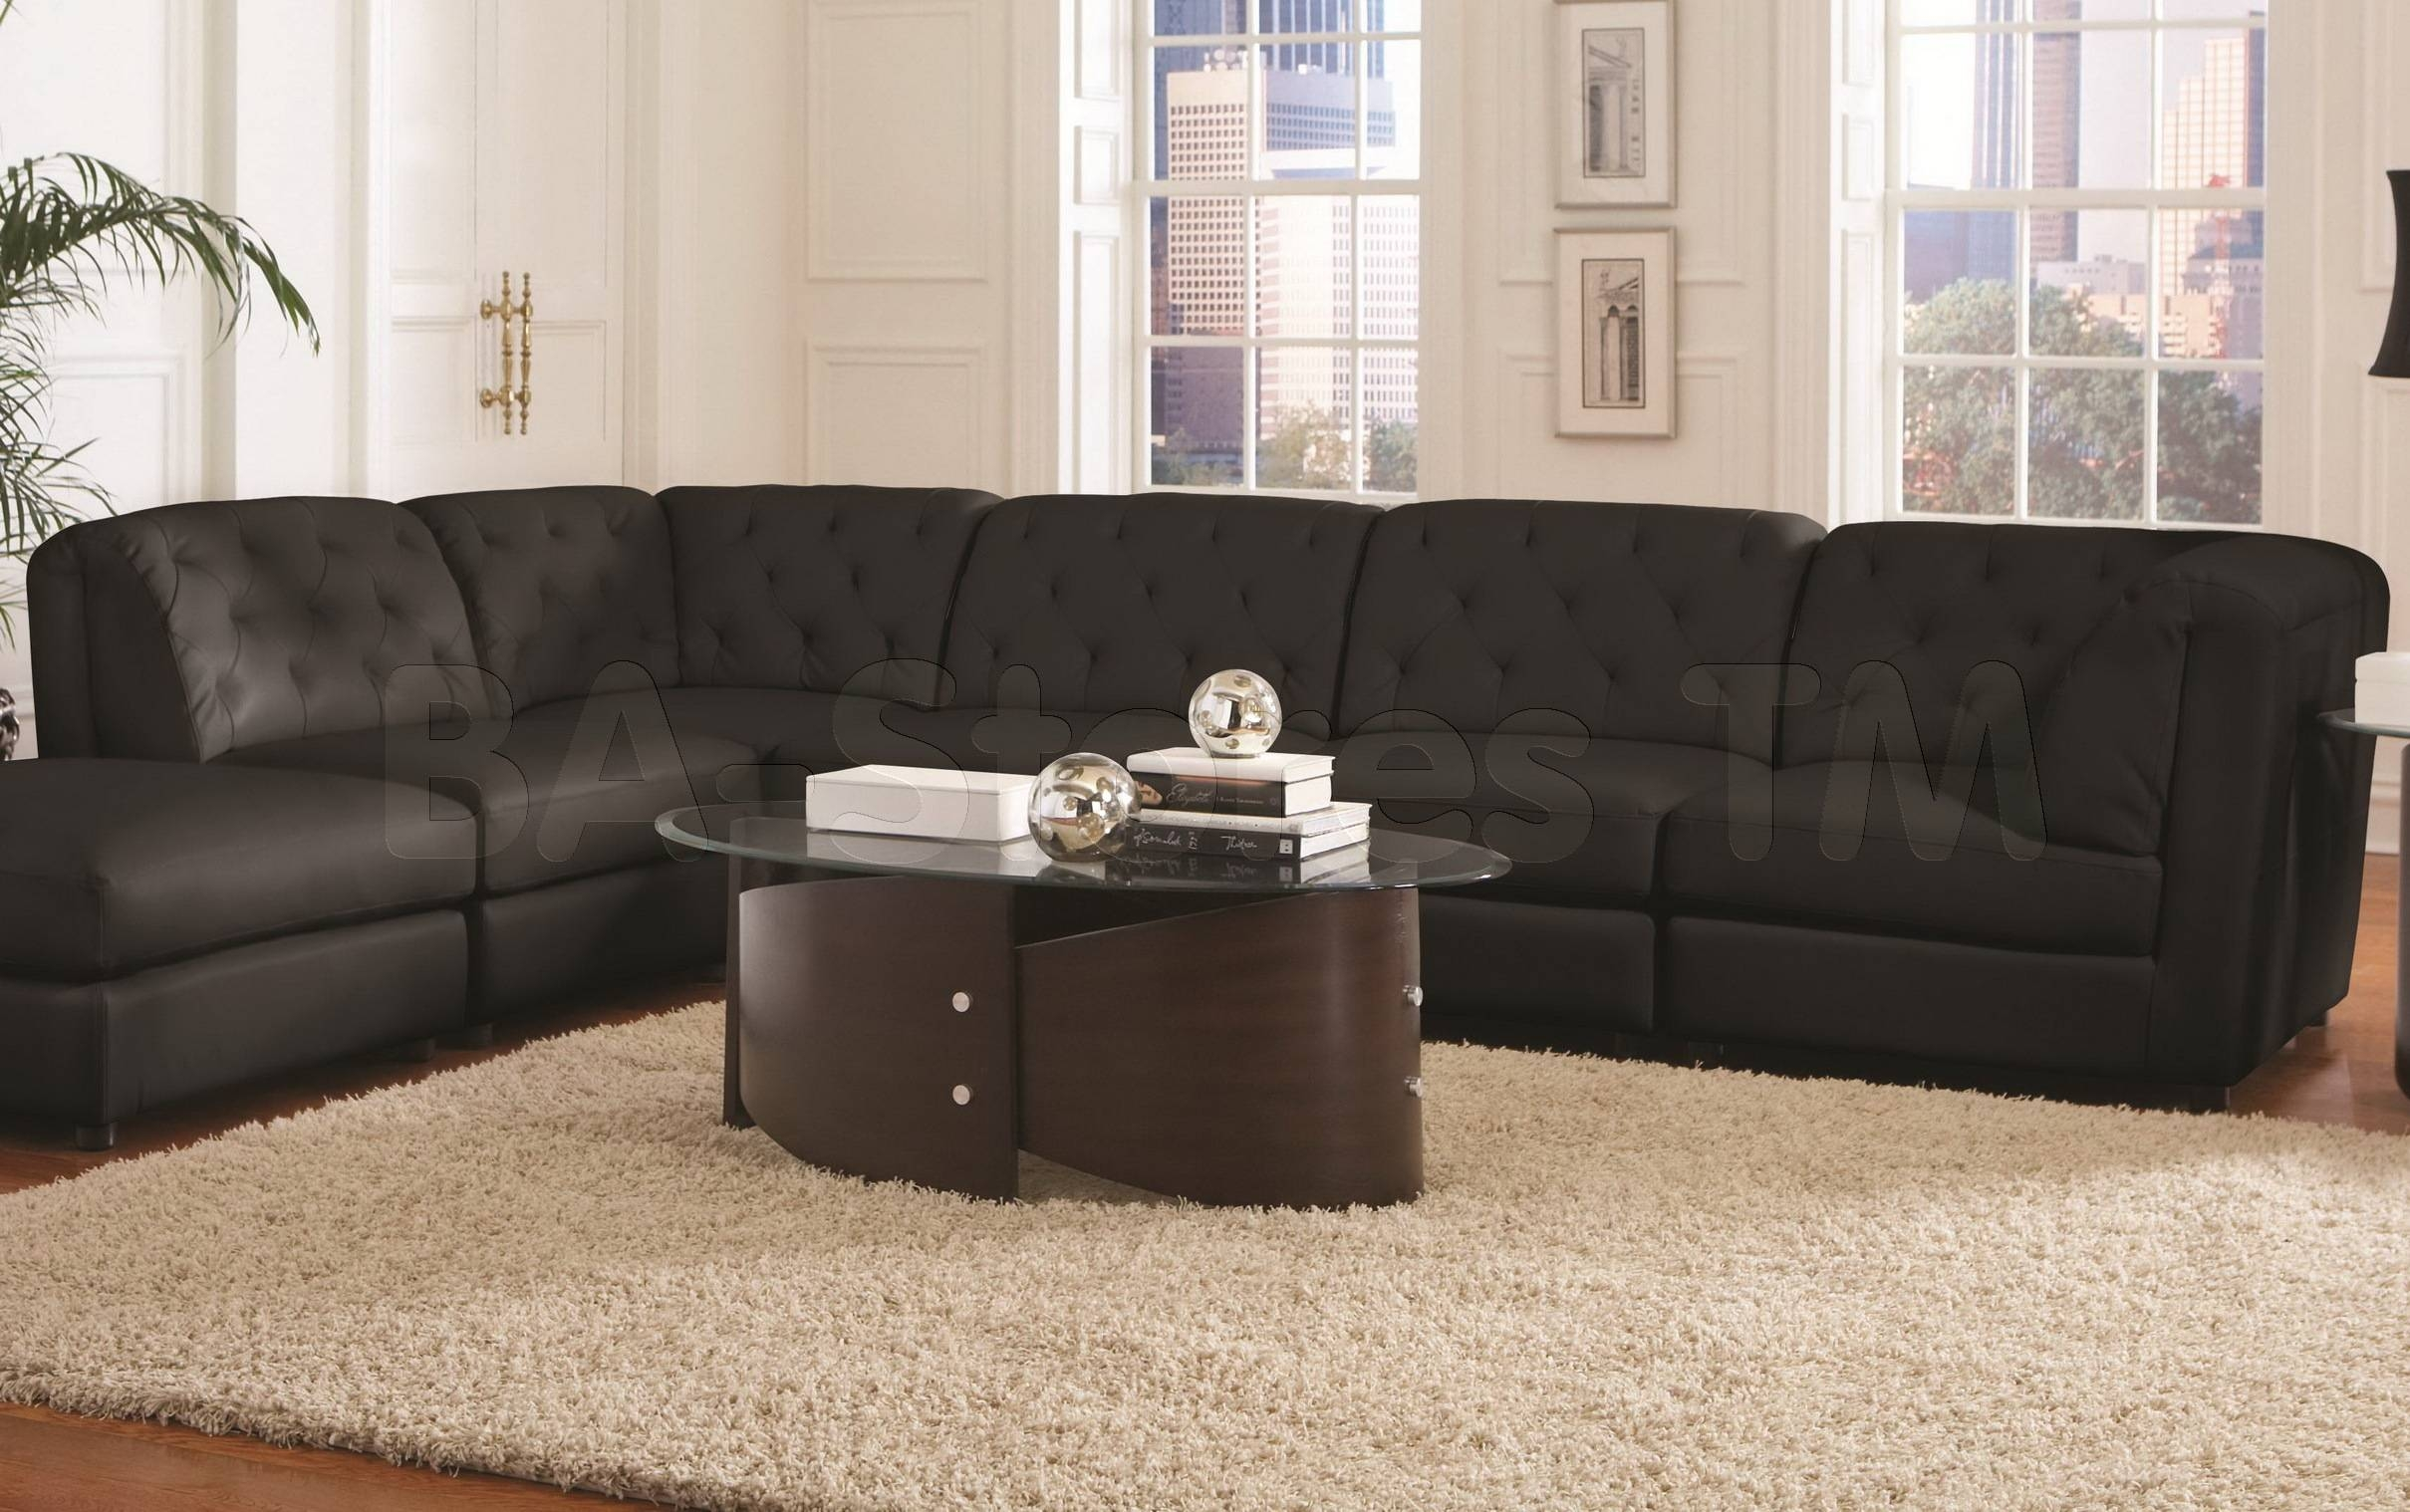 Enchanting Black Suede Sectional Sofa 21 About Remodel Jane Bi in Jane Bi Sectional Sofa (Image 3 of 30)